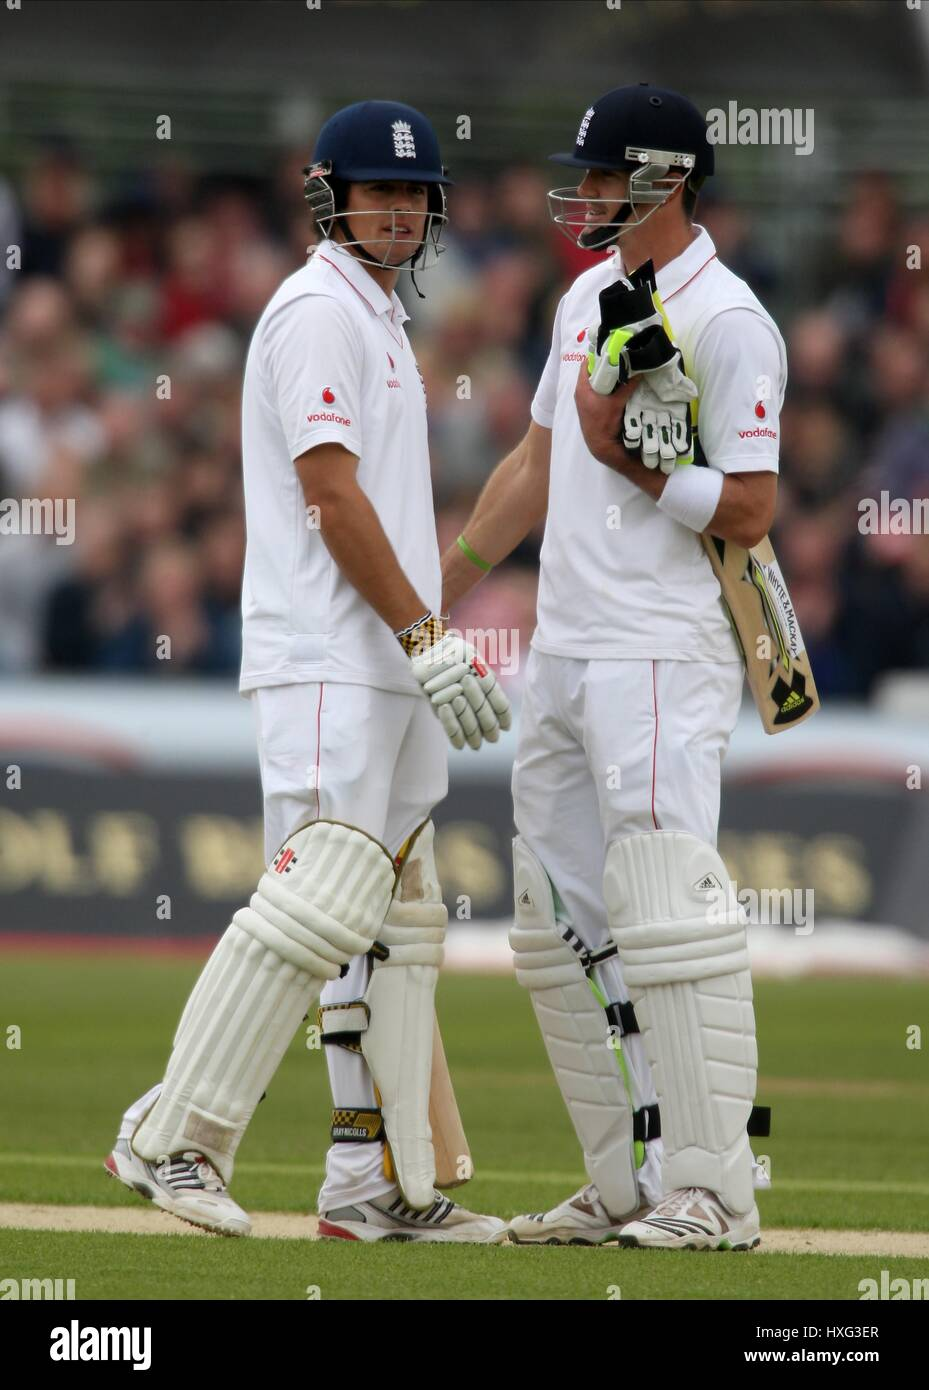 ALISTAIR COOK & KEVIN PIETERSE AFTER COOKS 150 RIVERSIDE DURHAM CO ENGLAND 16 May 2009 Stock Photo